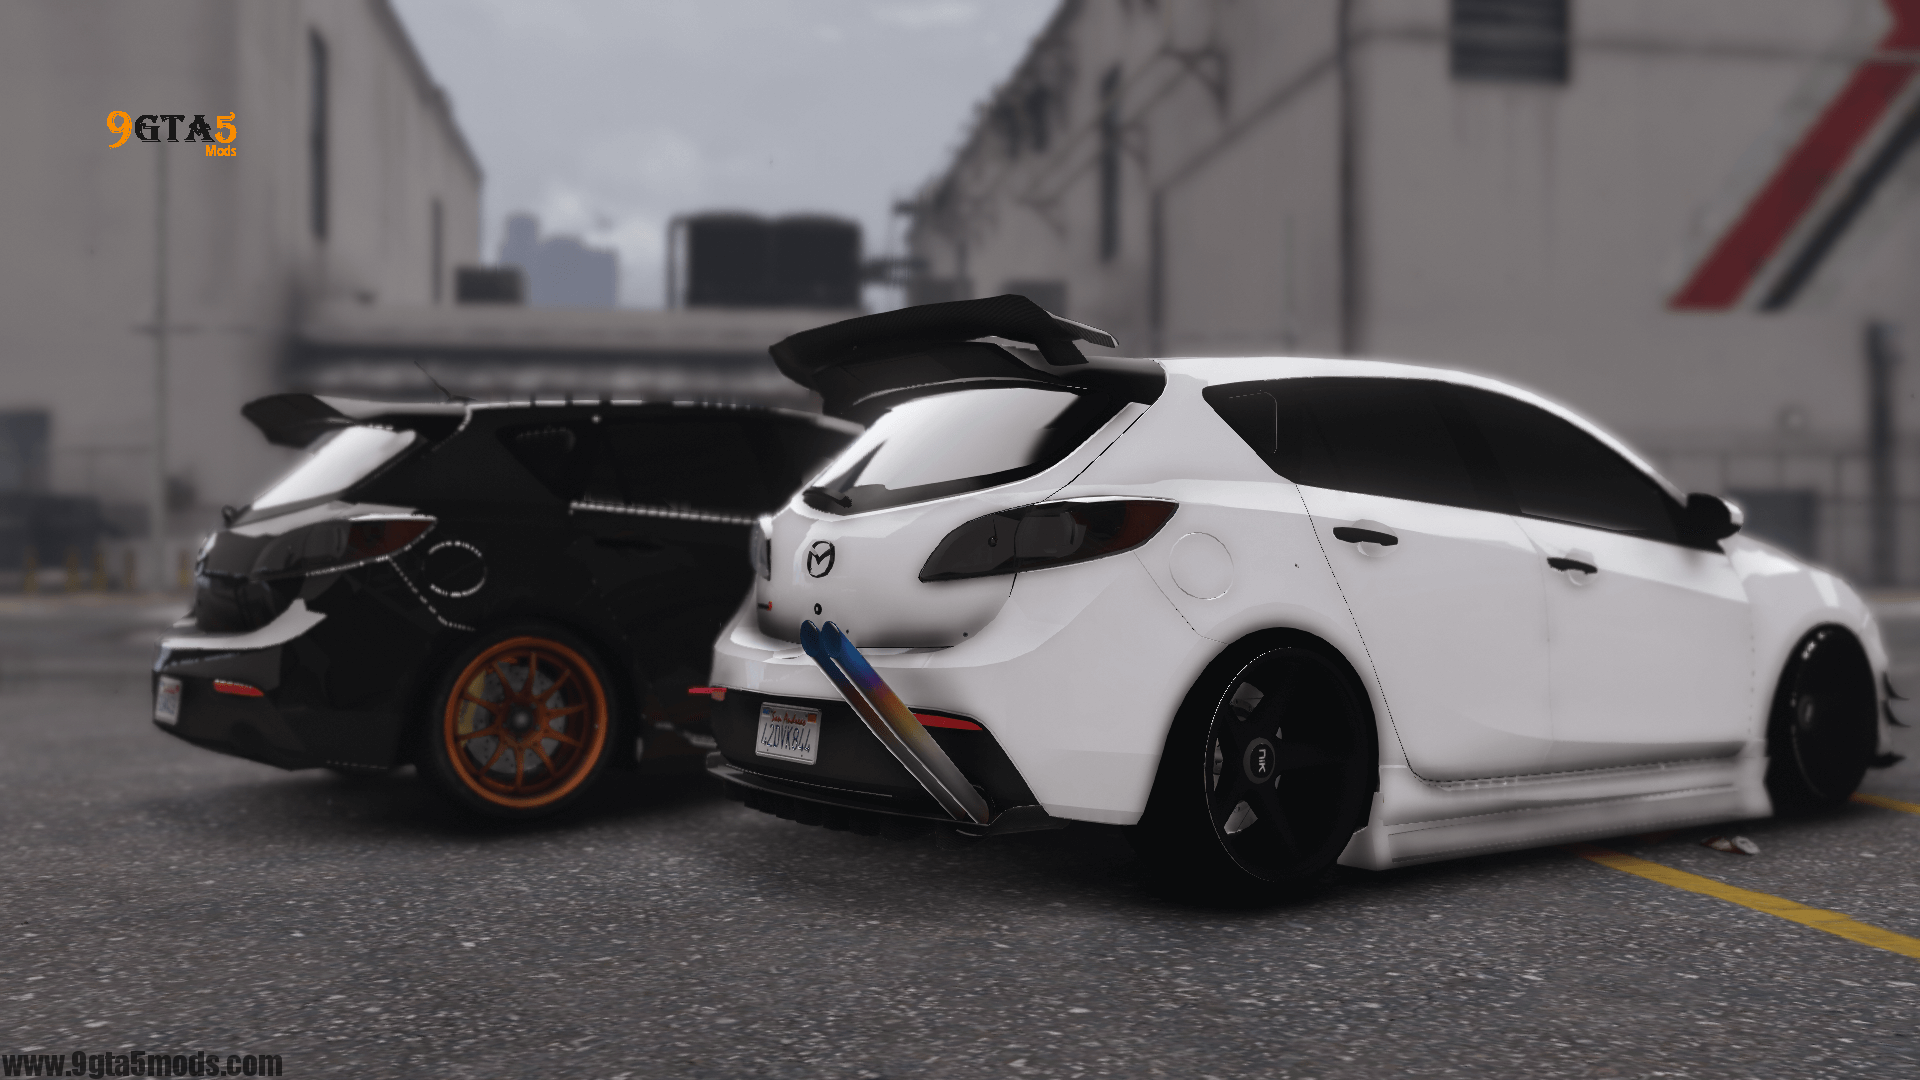 2010 Mazda 3 Modify Add On Template Tuning Gta 5